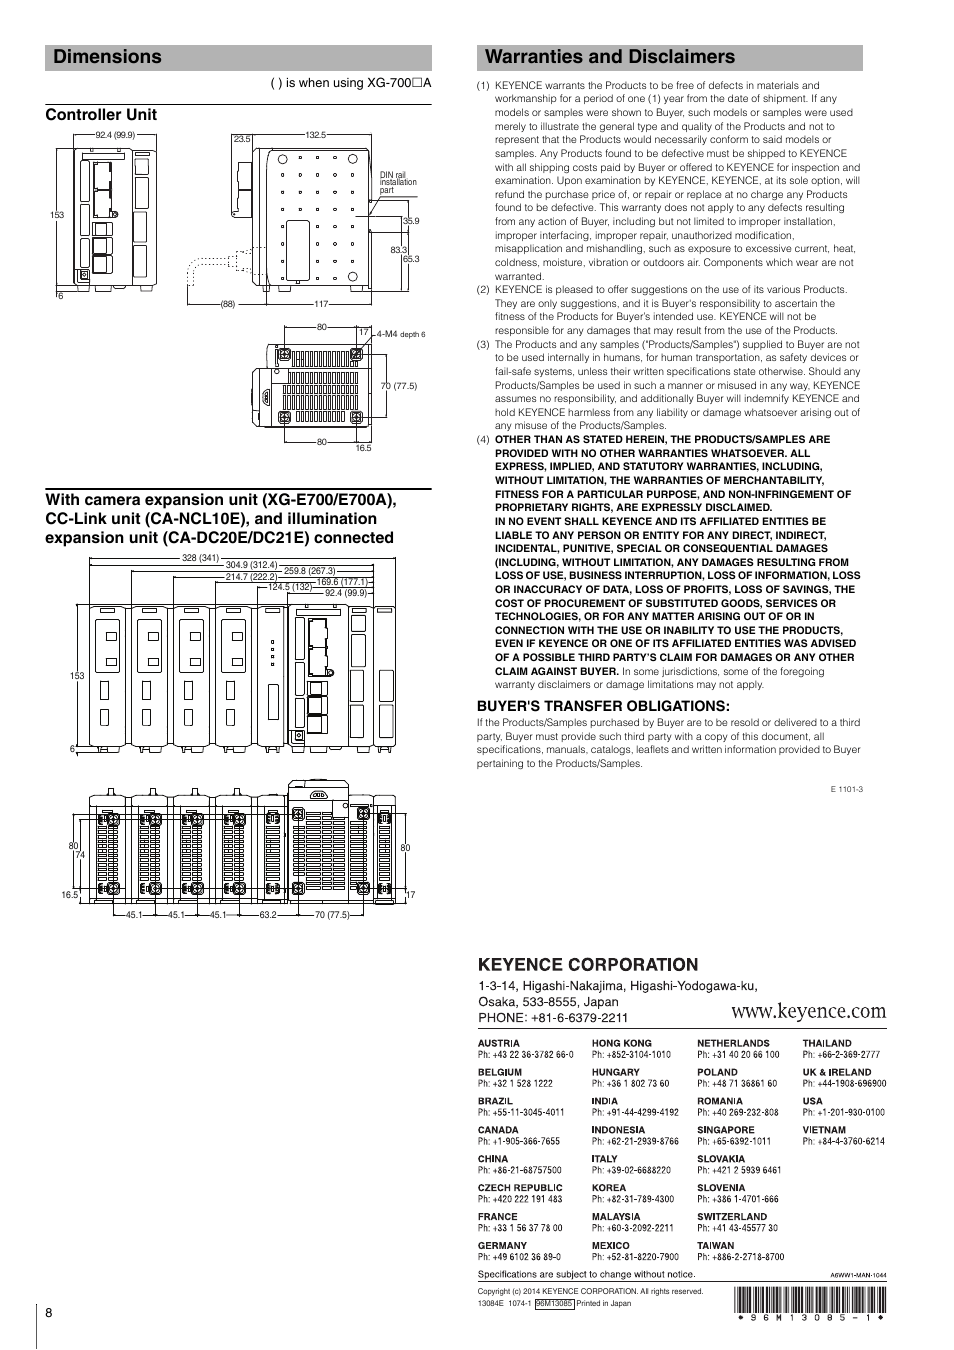 Dimensions, Controller unit, Warranties and disclaimers